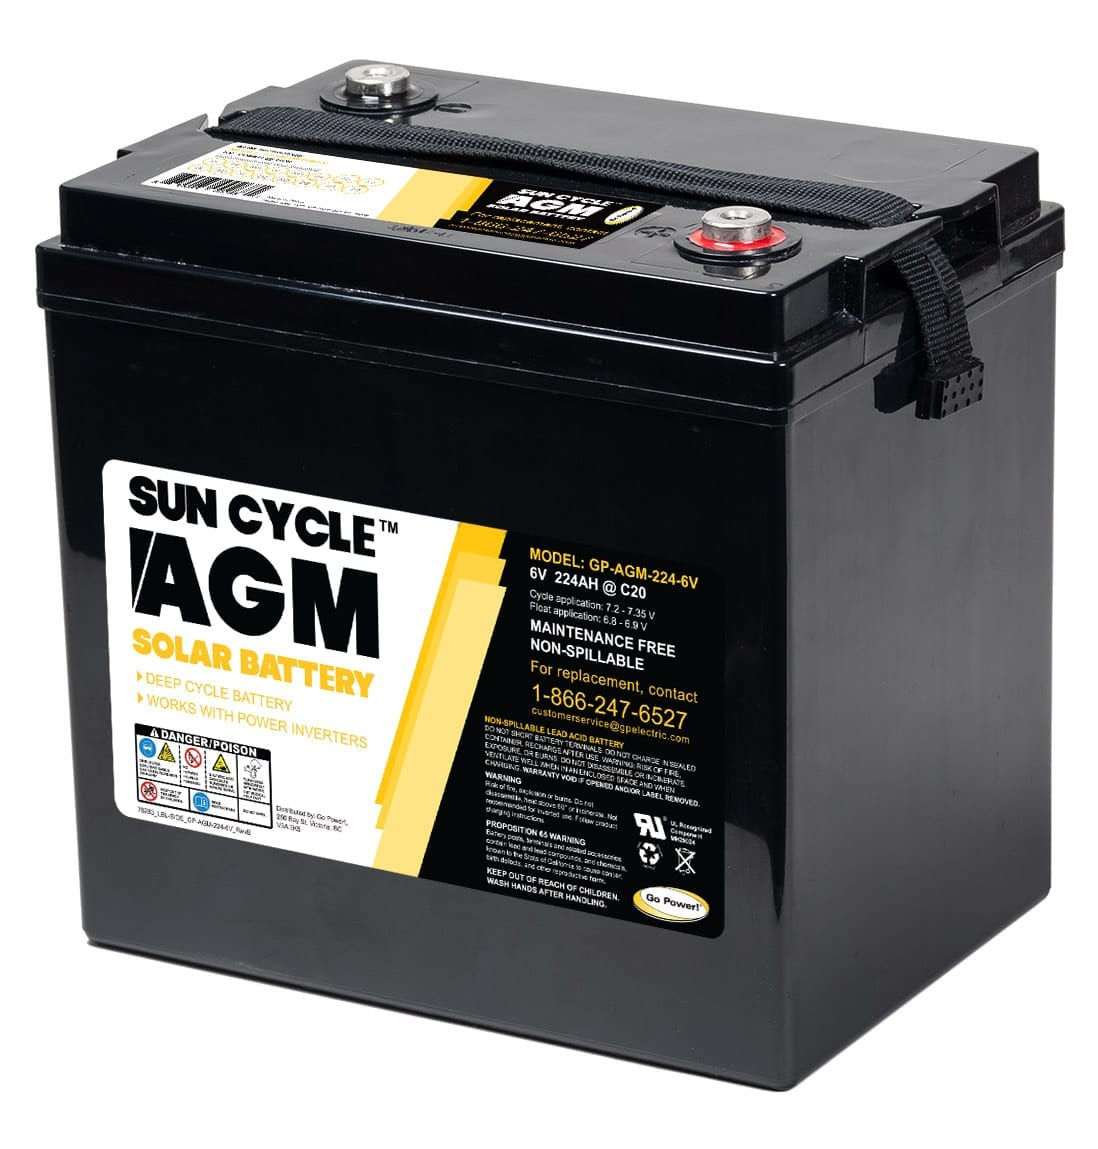 6 volt sun cycle agm solar battery go power. Black Bedroom Furniture Sets. Home Design Ideas